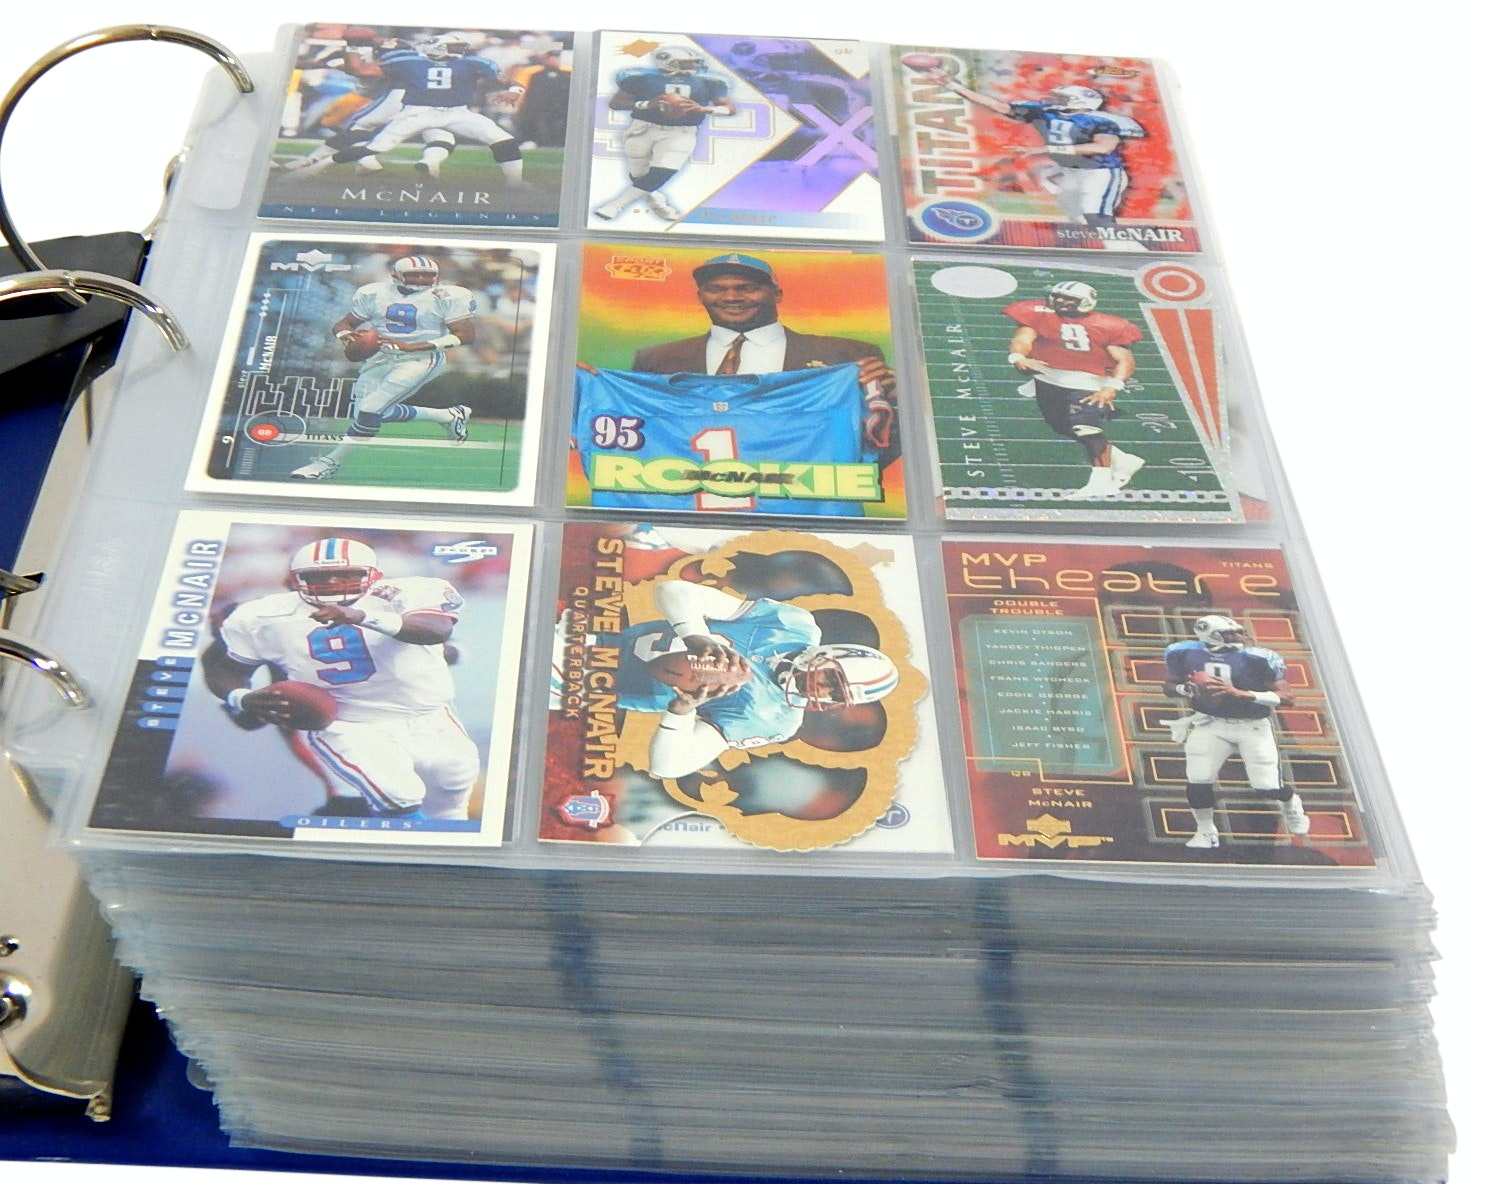 Large Album of Football Cards with Rookies, Stars, Etc. - Around 1000 Card Count